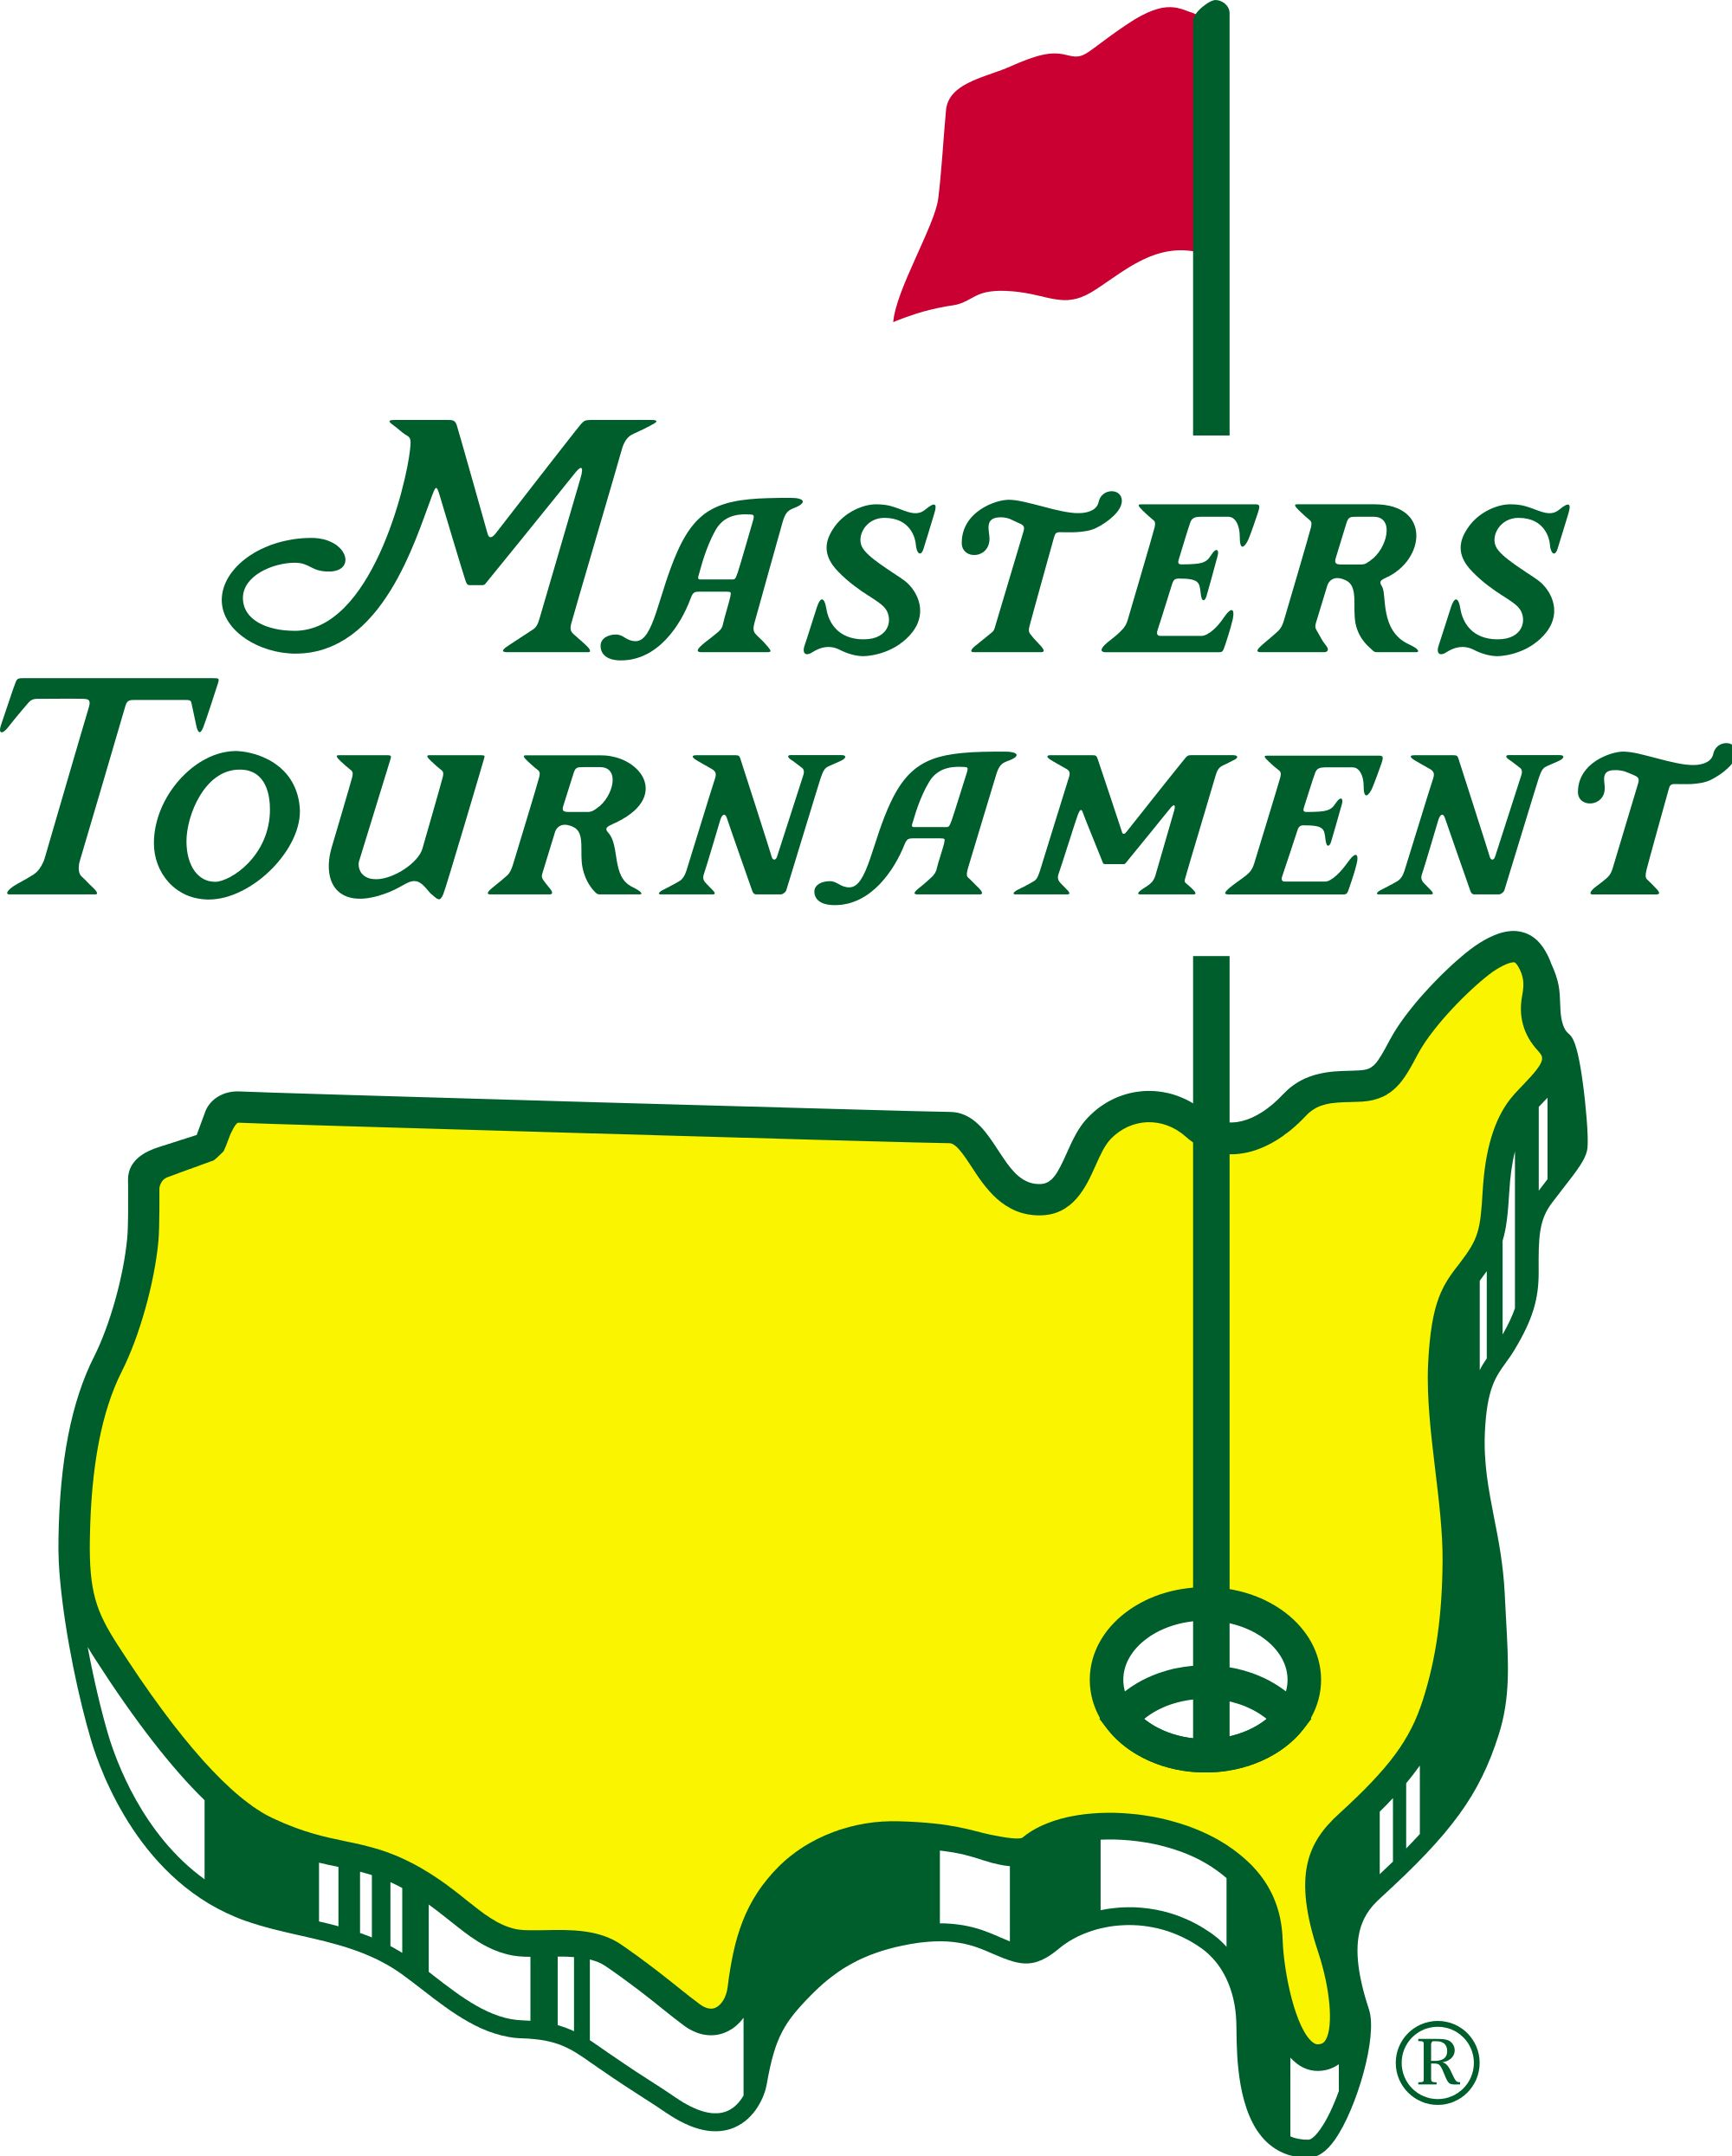 Augusta Masters Tournament Logo.